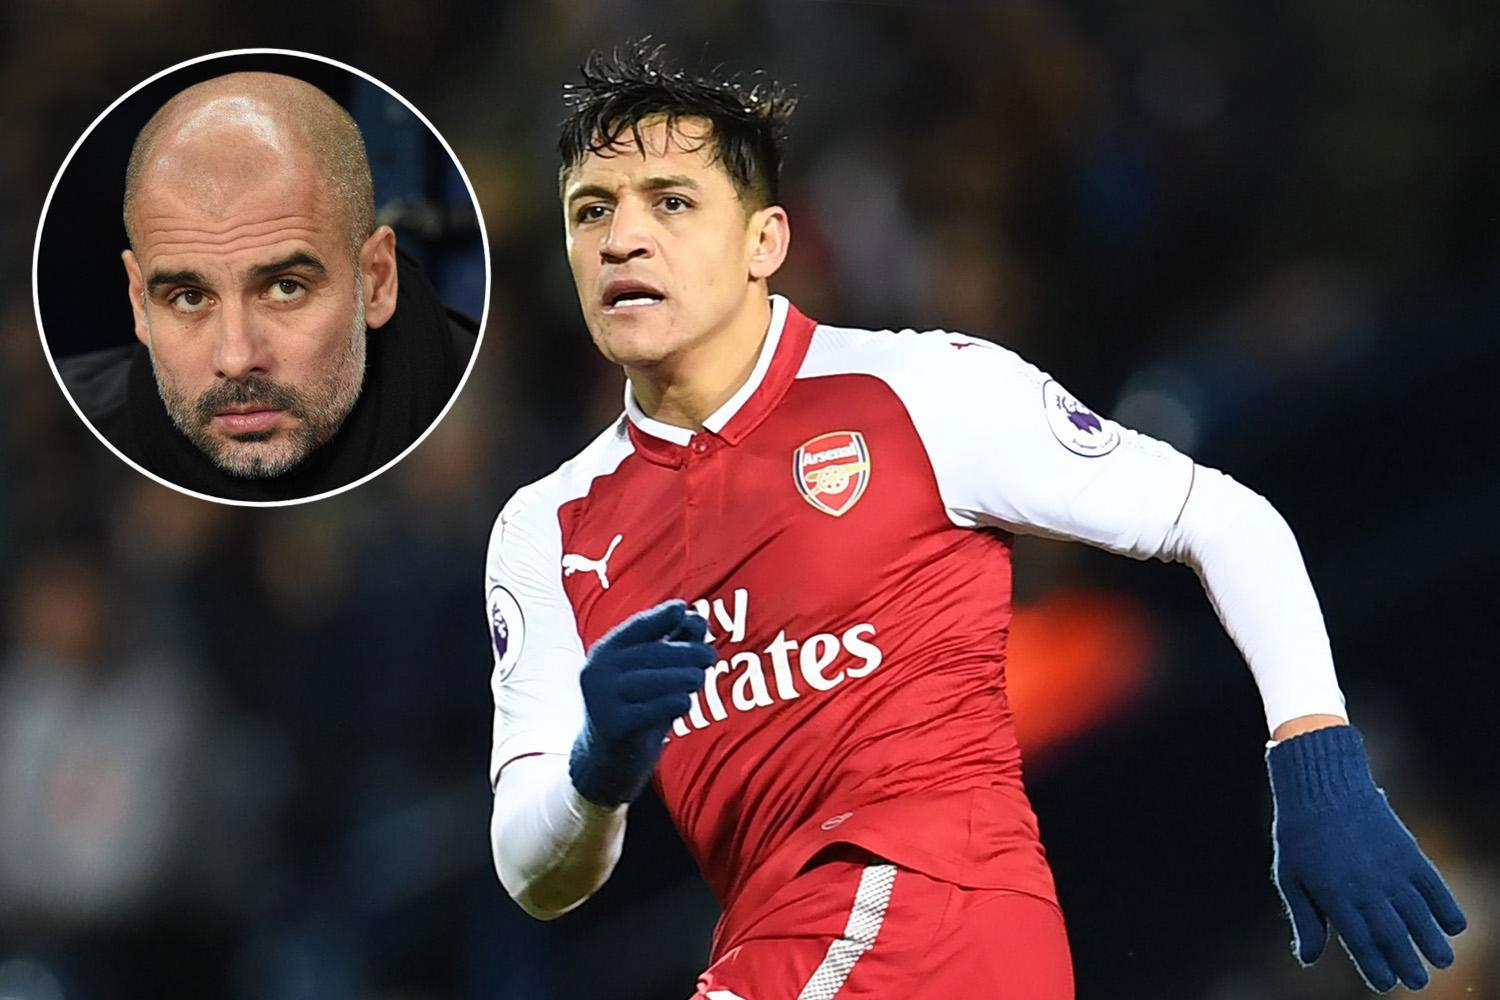 http://wsbuzz.com/wp-content/uploads/2018/01/sport-preview-alexis-sanchez-and-pep-guardiola.jpg